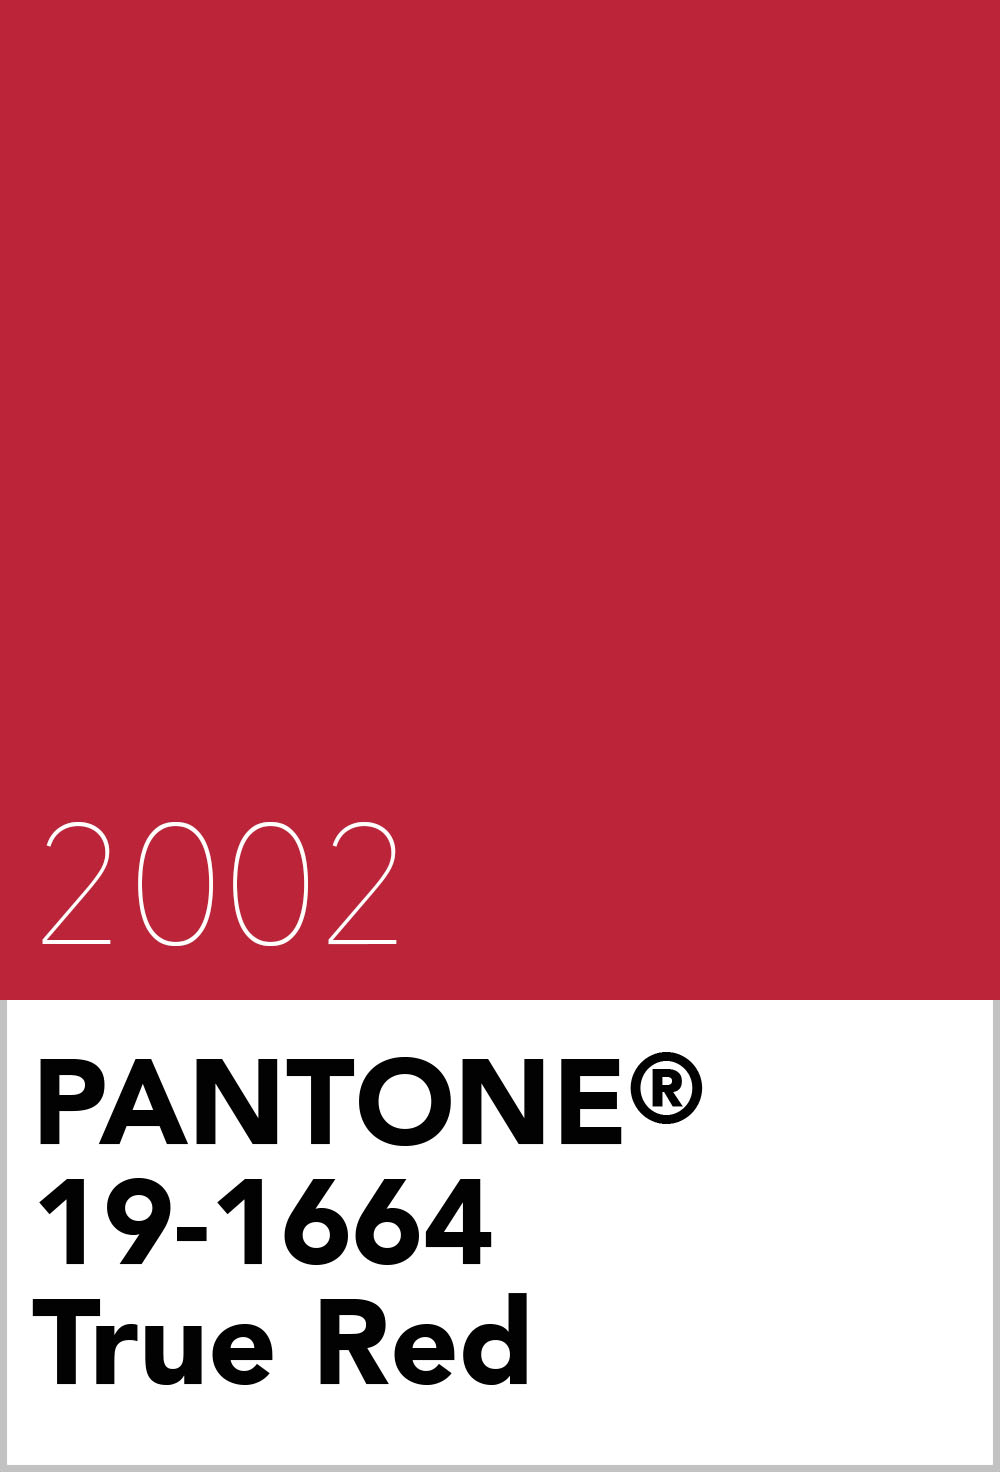 pantone colour of the year 2002